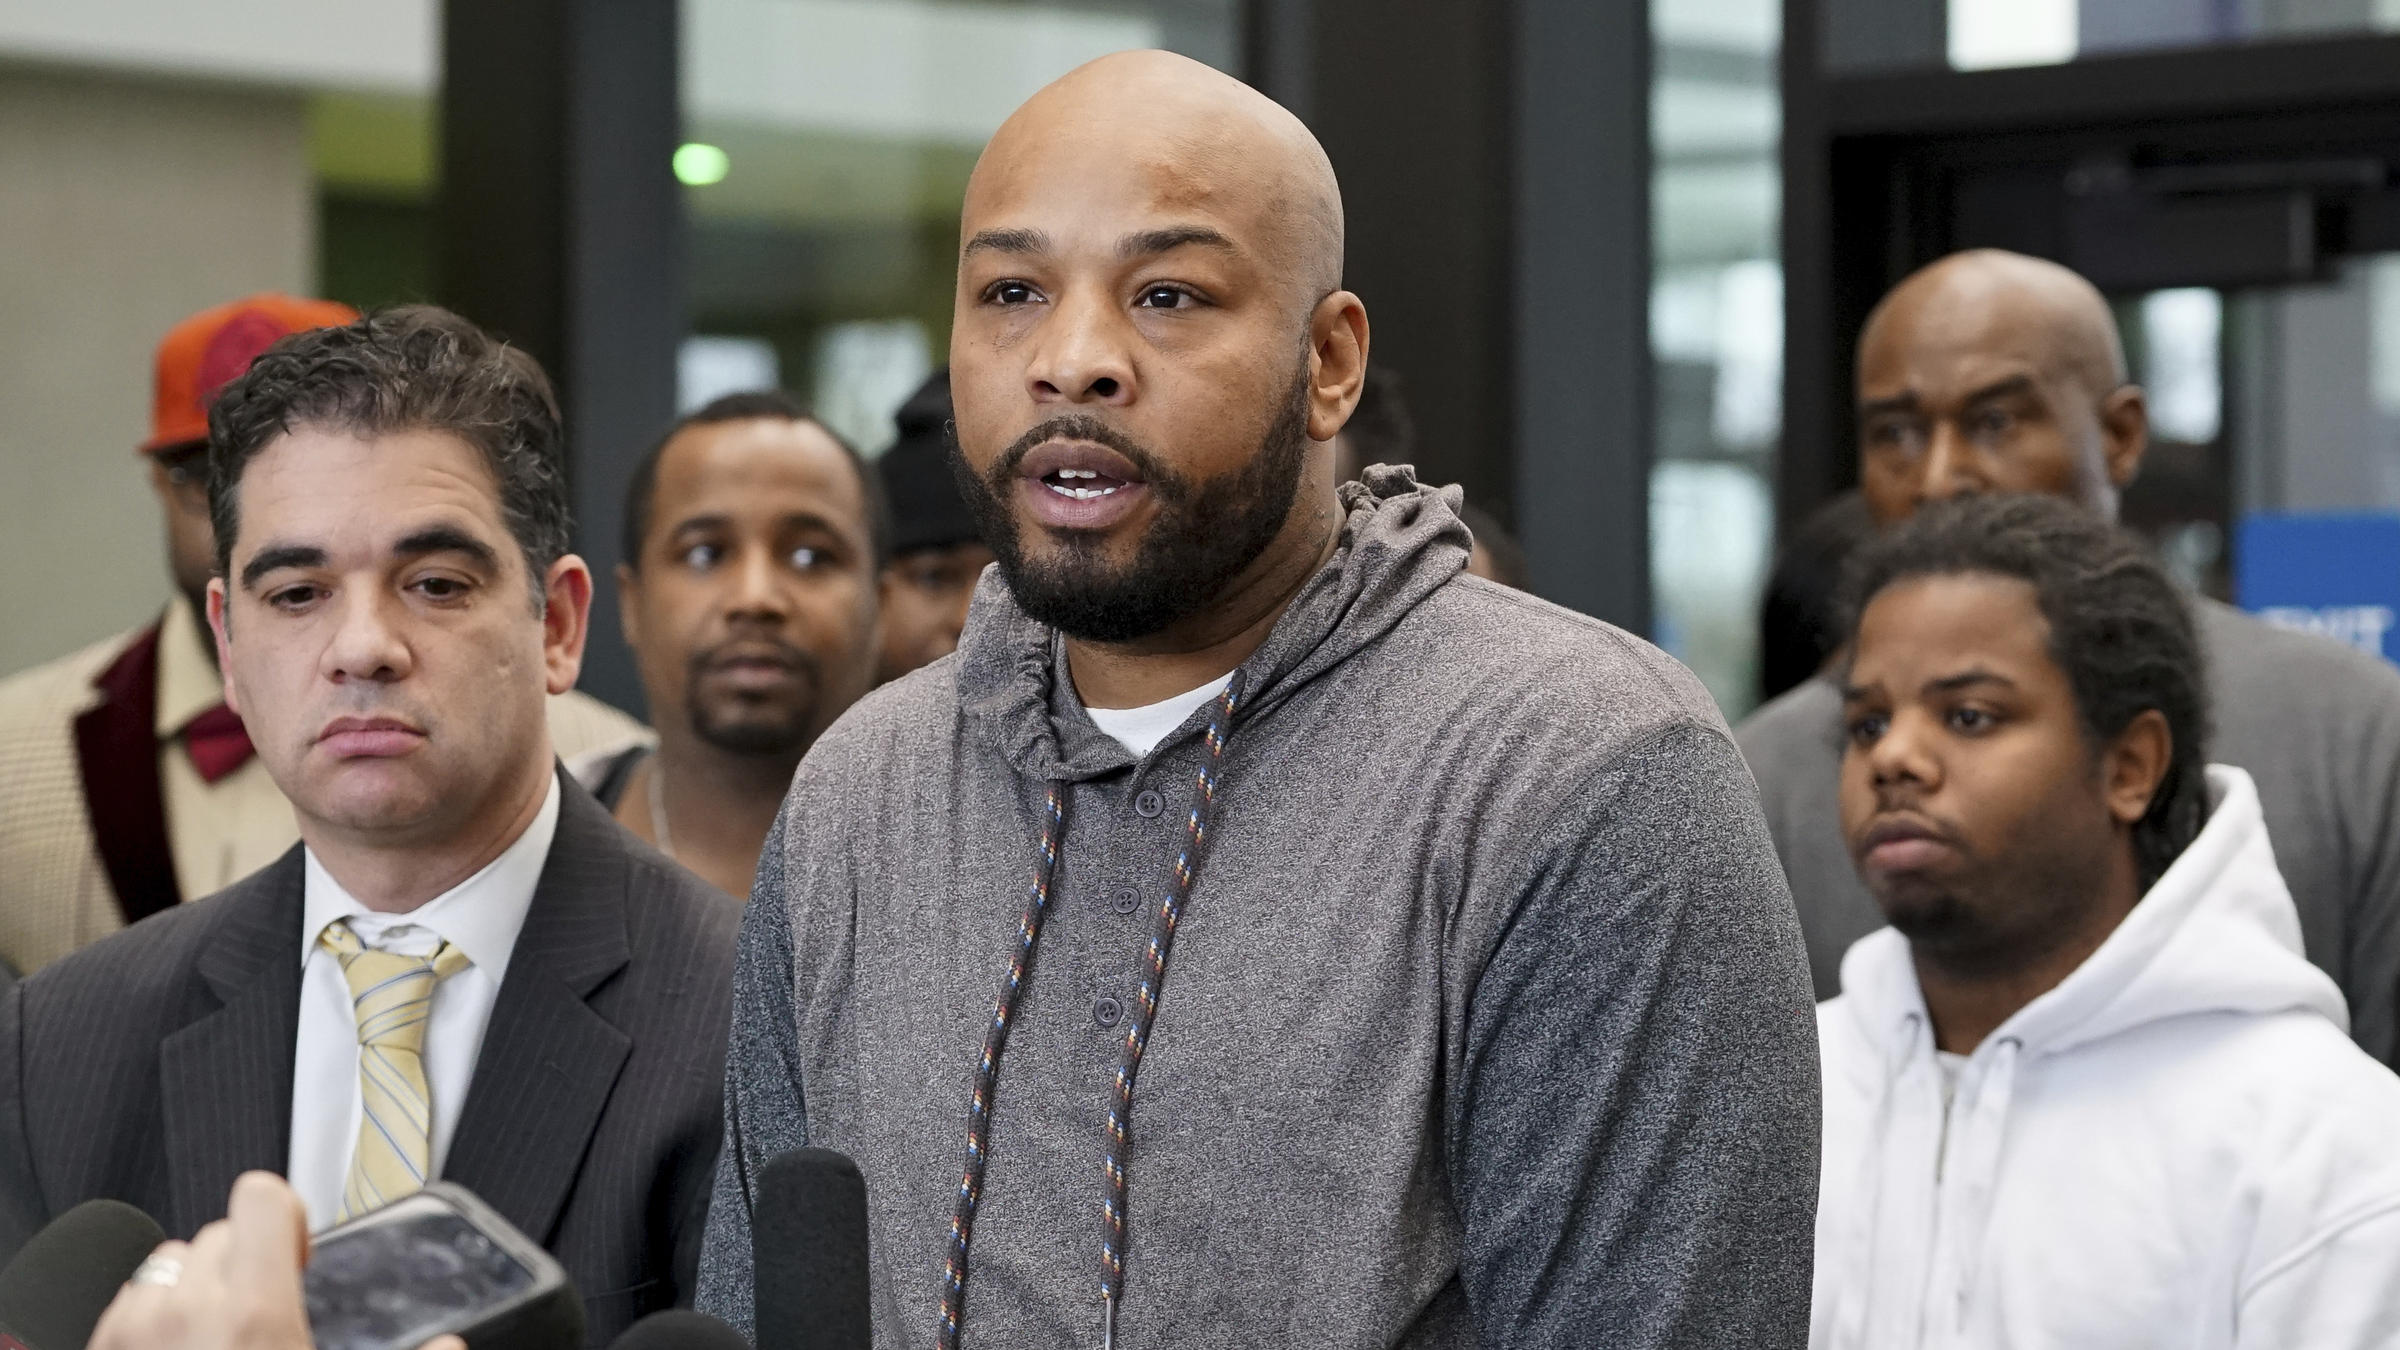 Mass exoneration: Convictions of 15 men, tied to tainted CPD officer, overturned